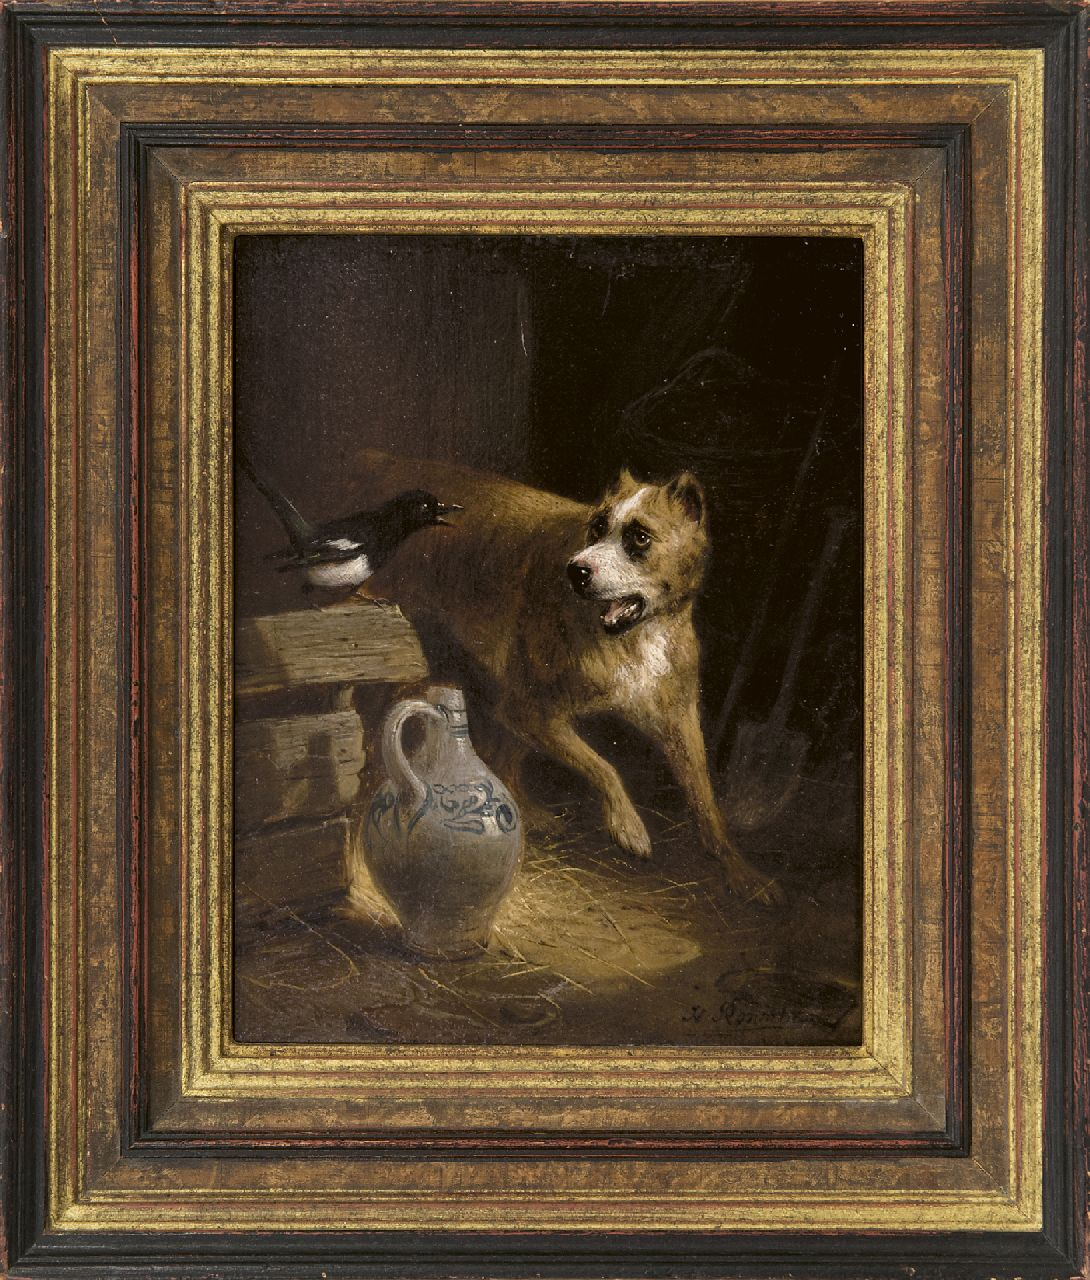 Ronner-Knip H.  | Henriette Ronner-Knip | Paintings offered for sale | The cheeky visitor, oil on panel 19.2 x 15.7 cm, signed l.r.